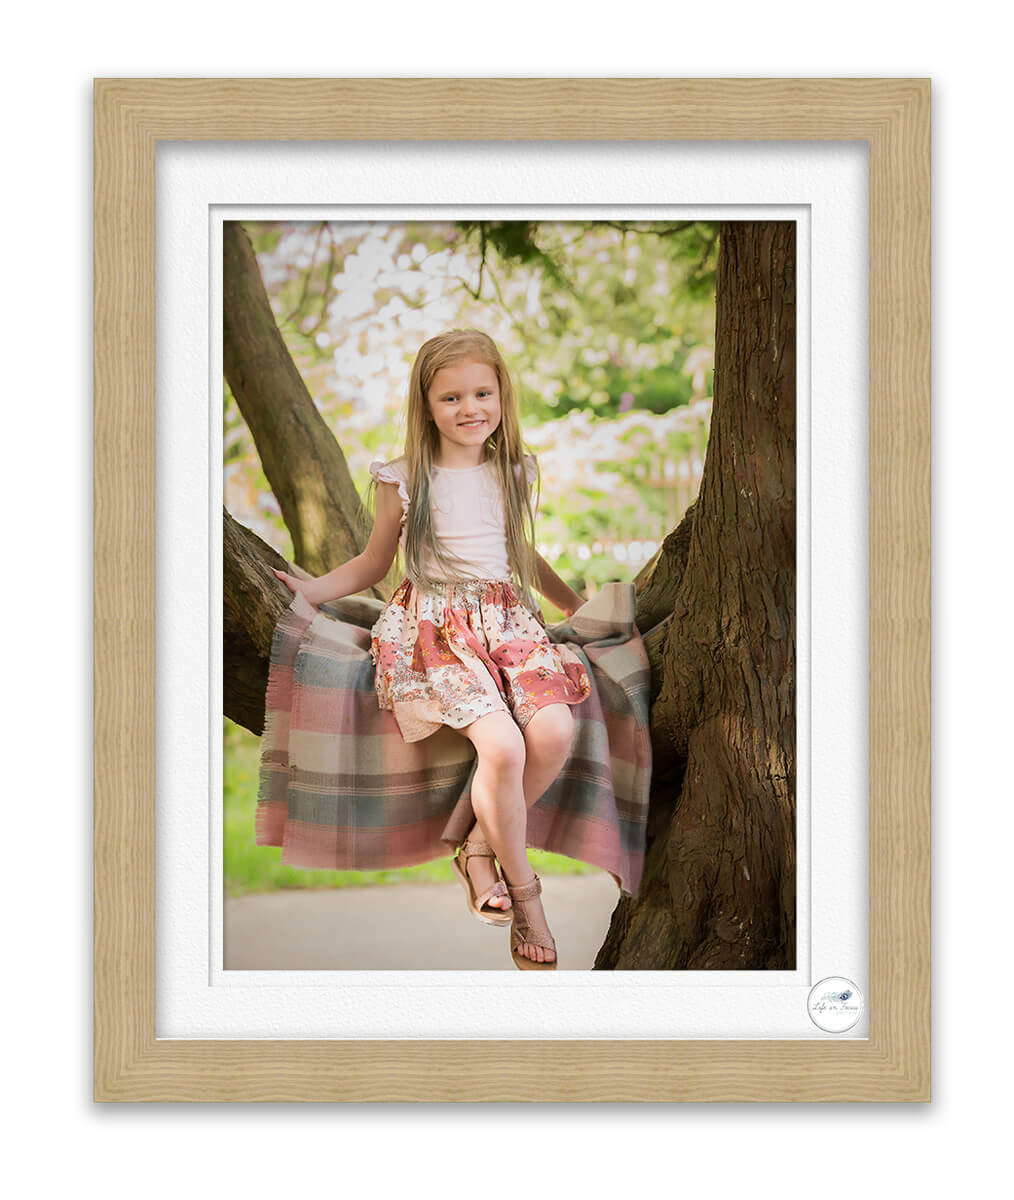 photo of young girl sitting in tree in park smiling at photographer Life in Focus Portraits family photographer Rhu Helensburgh Loch Lomond